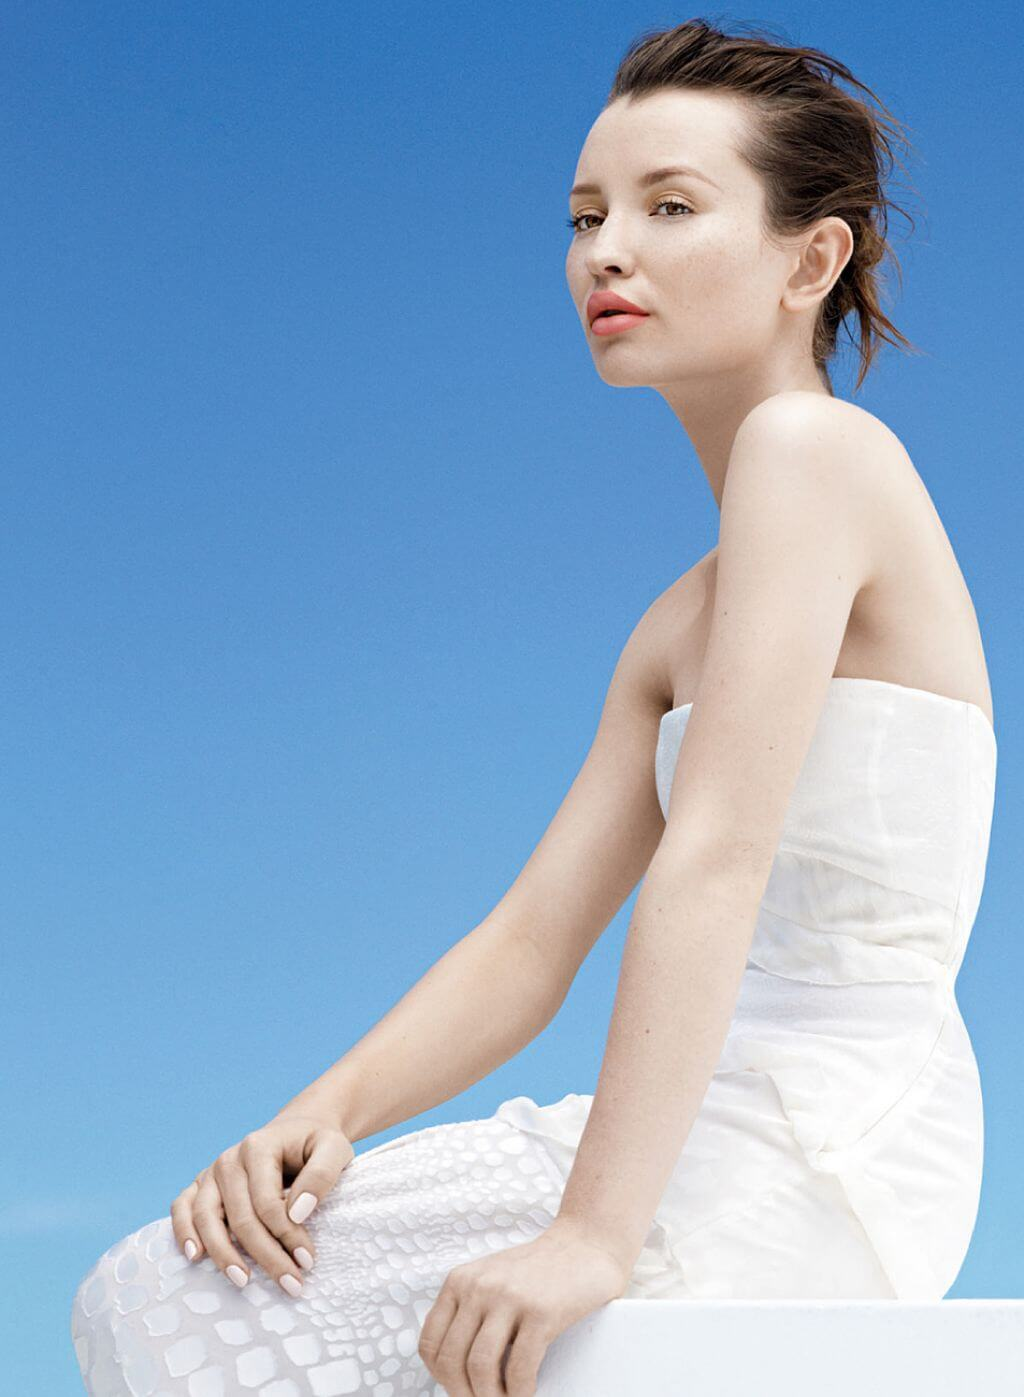 Emily Browning hot side pic